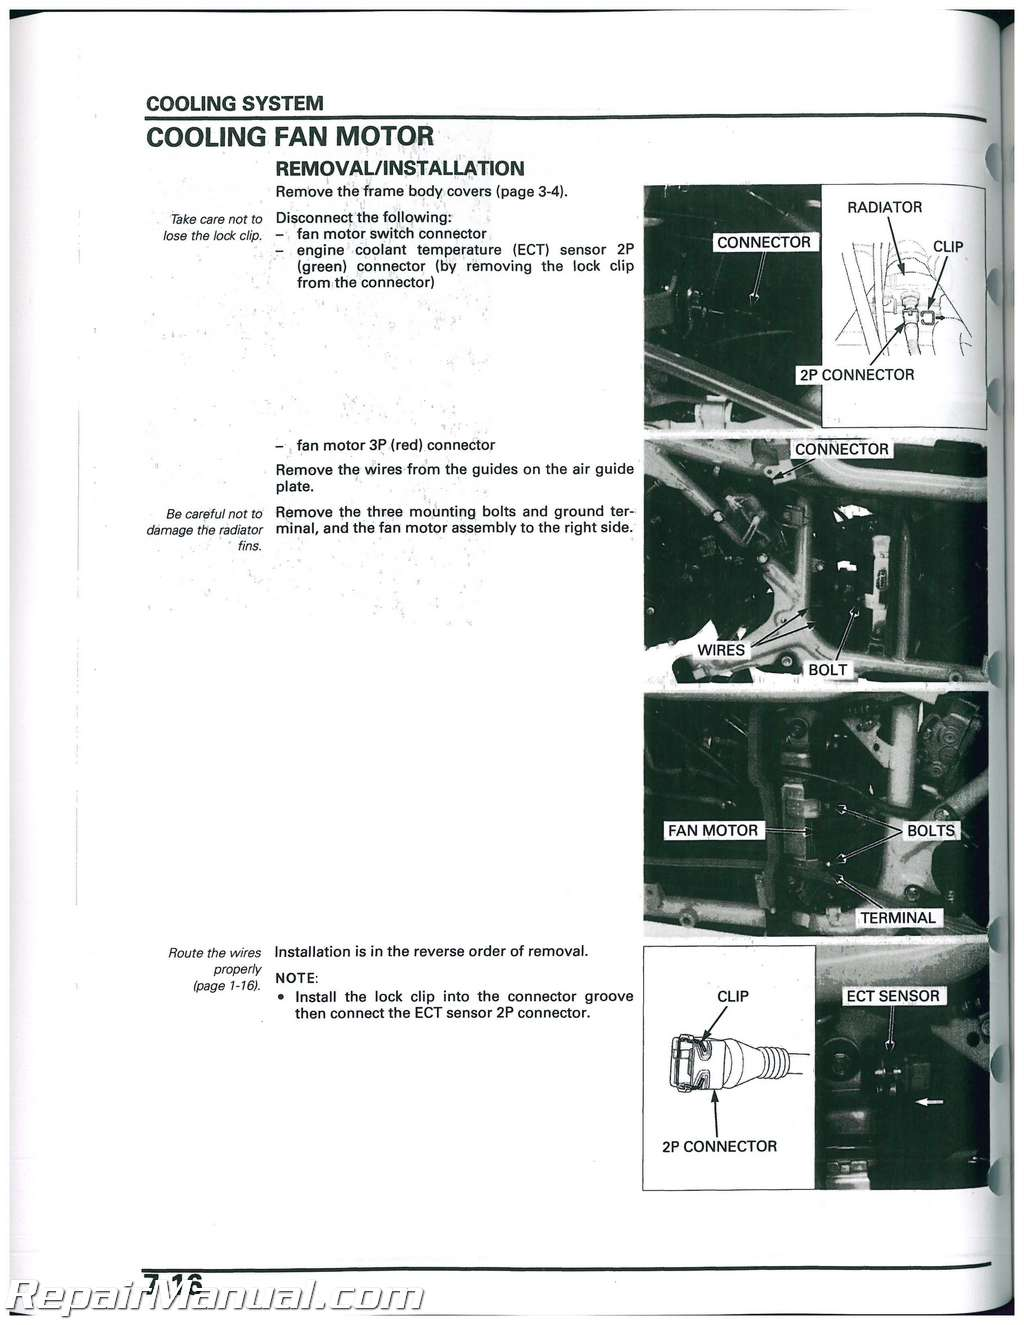 Mazda 3 Service Manual: Sensors, Switches, Relays